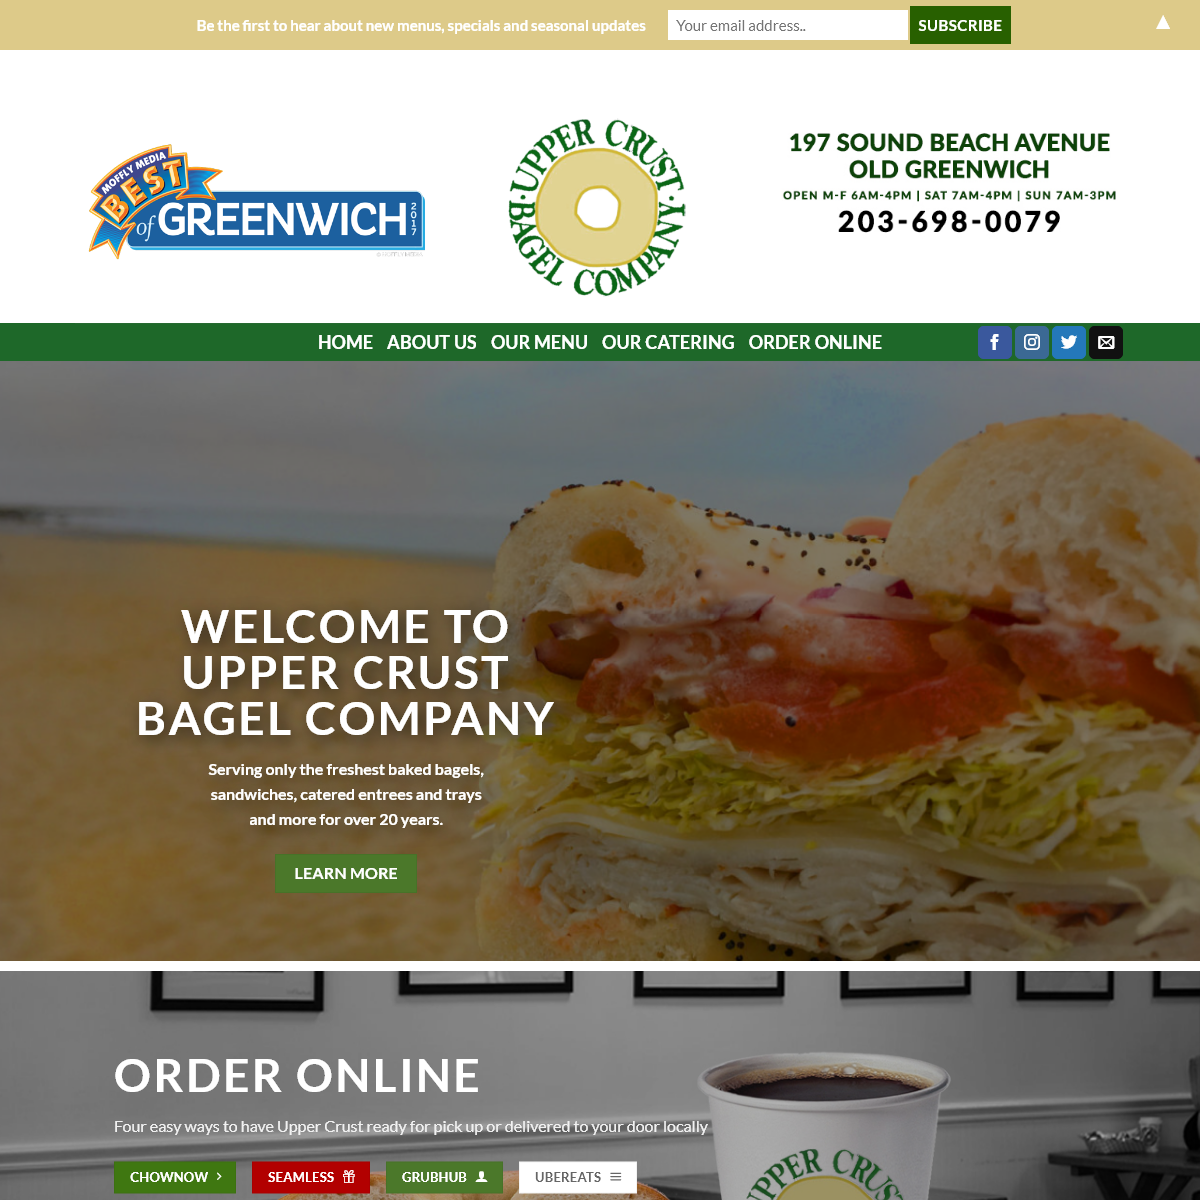 Upper Crust Bagel Company – Serving Only the Freshest for over 20 years